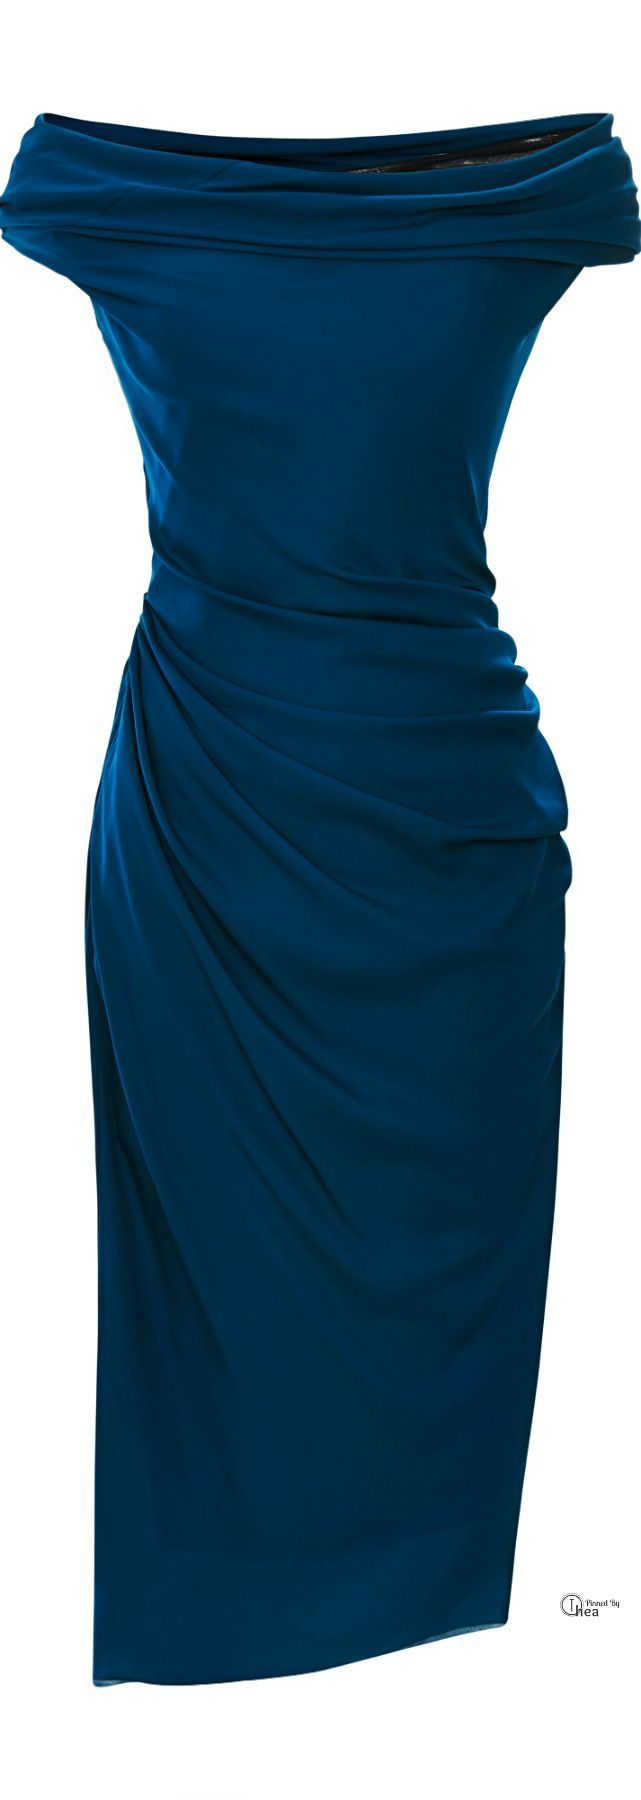 blue fashion style moda clothes wear picture image dress www.womans-heaven... @ http://womenapparelclothing.com #dress #womendress #dresses